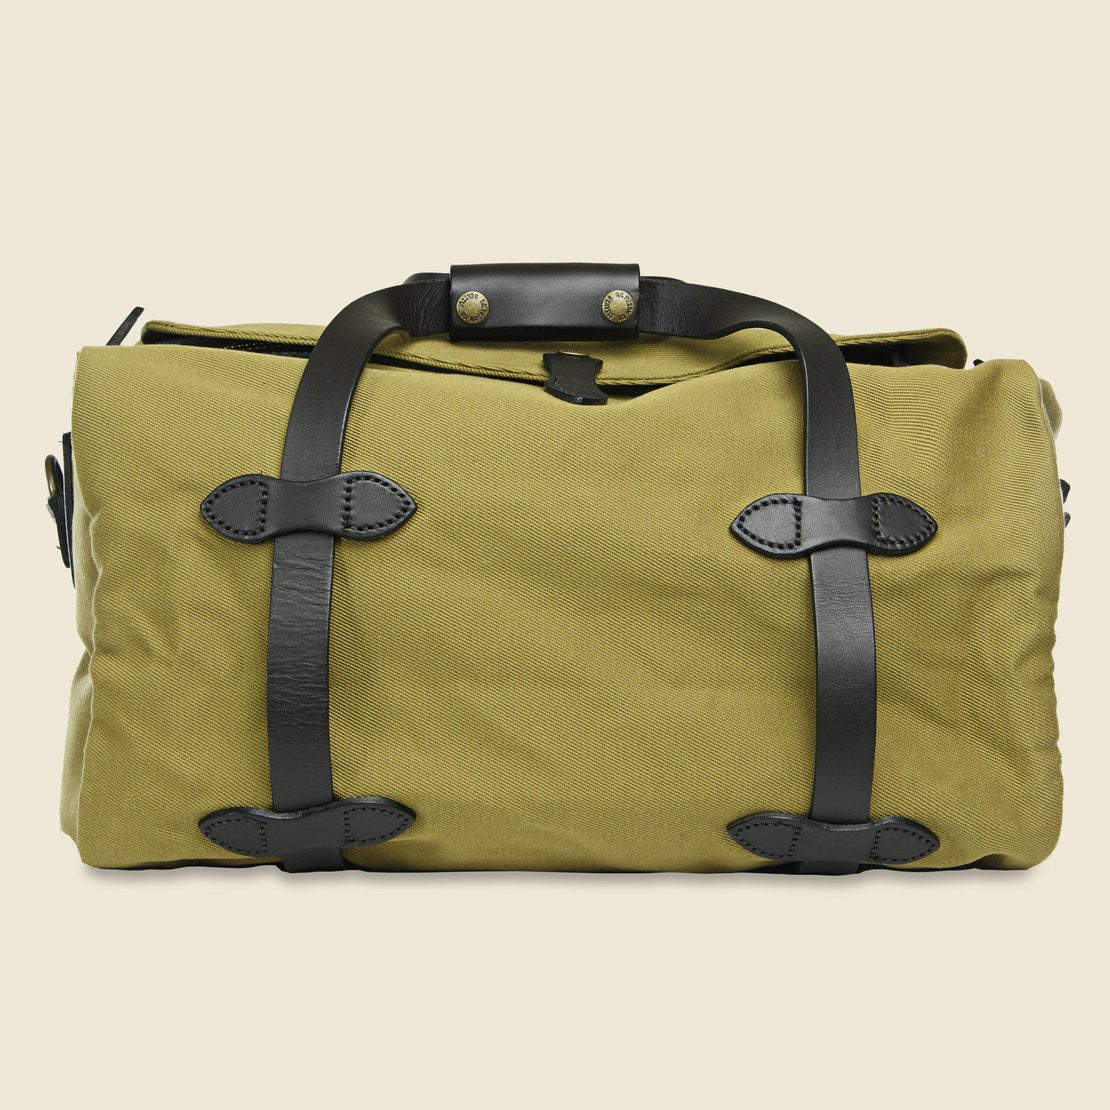 Filson Small Duffle Bag - Tan